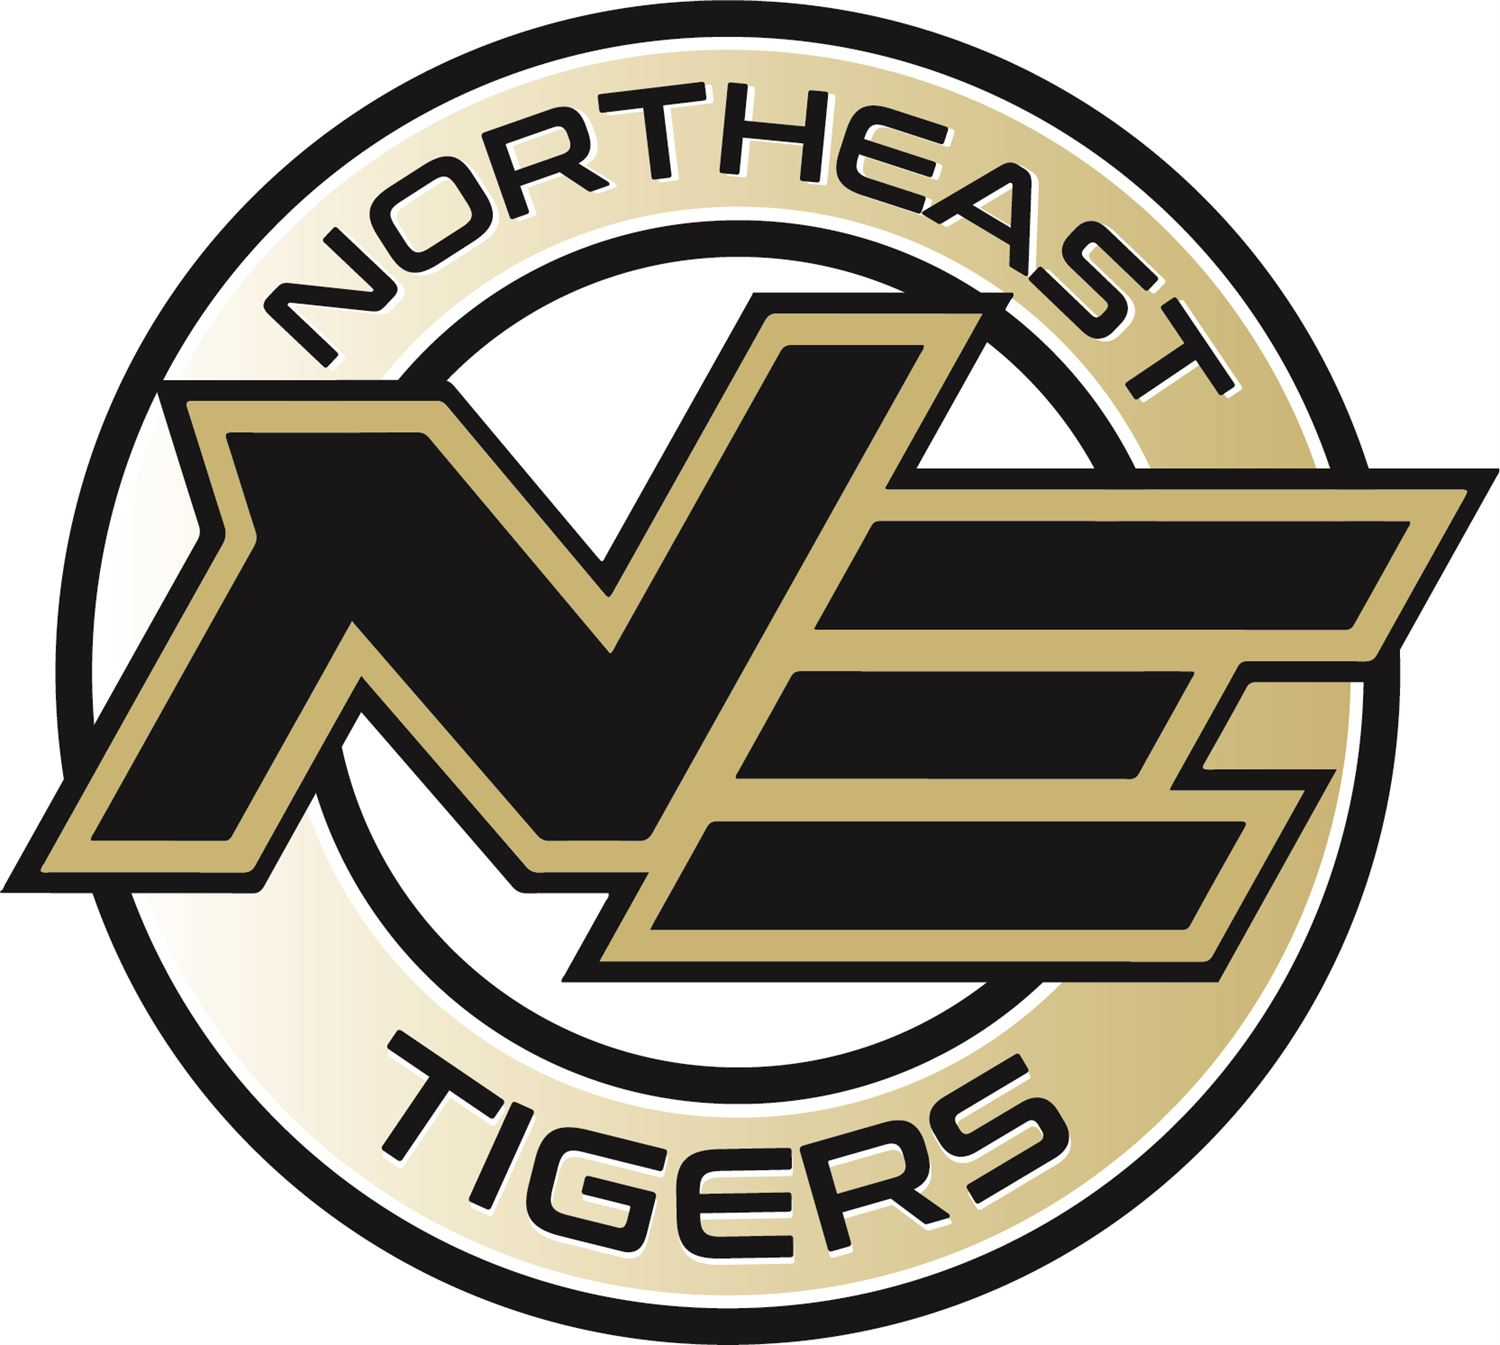 Northeast Mississippi Community College - Northeast Tiger Football